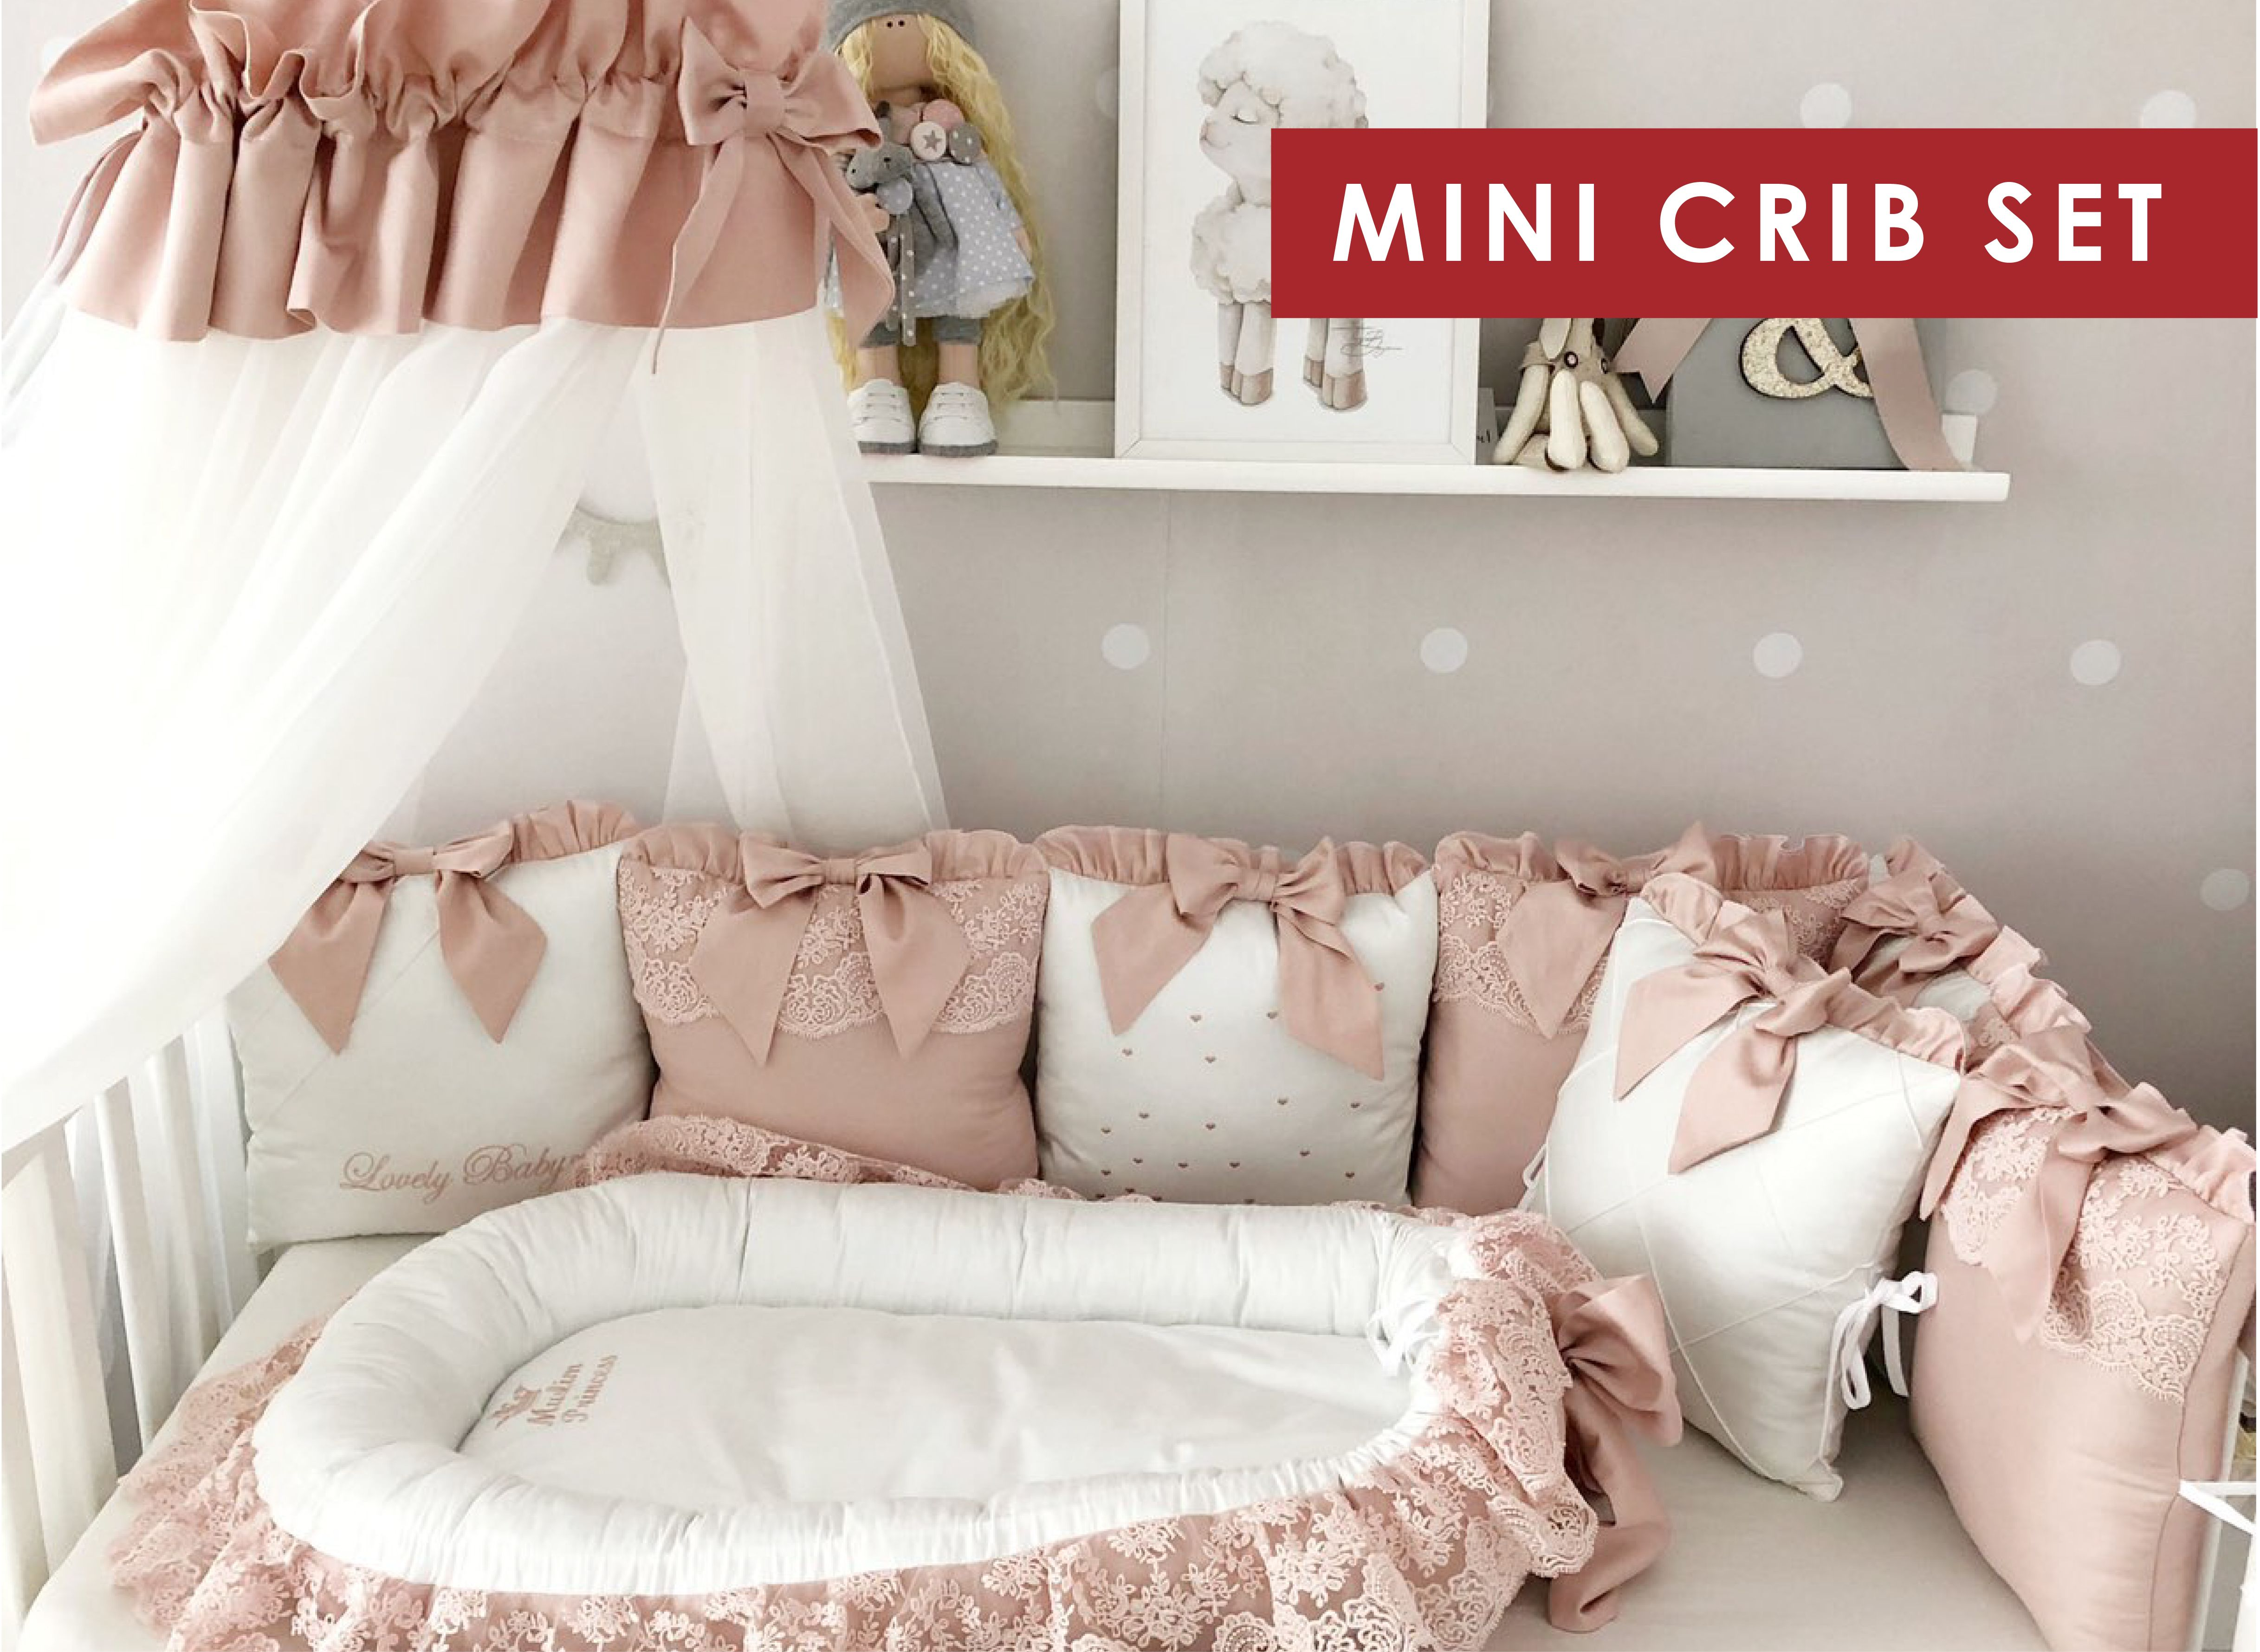 Baby Girl Bedding Crib Set Cot Bedding Set For Girl Personalized Baby Bedding Deluxe Baby Nest Baby Sleeper Bumper Pads Receiving Blanket Mini Crib Bedding Crib Bedding Girl Baby Girl